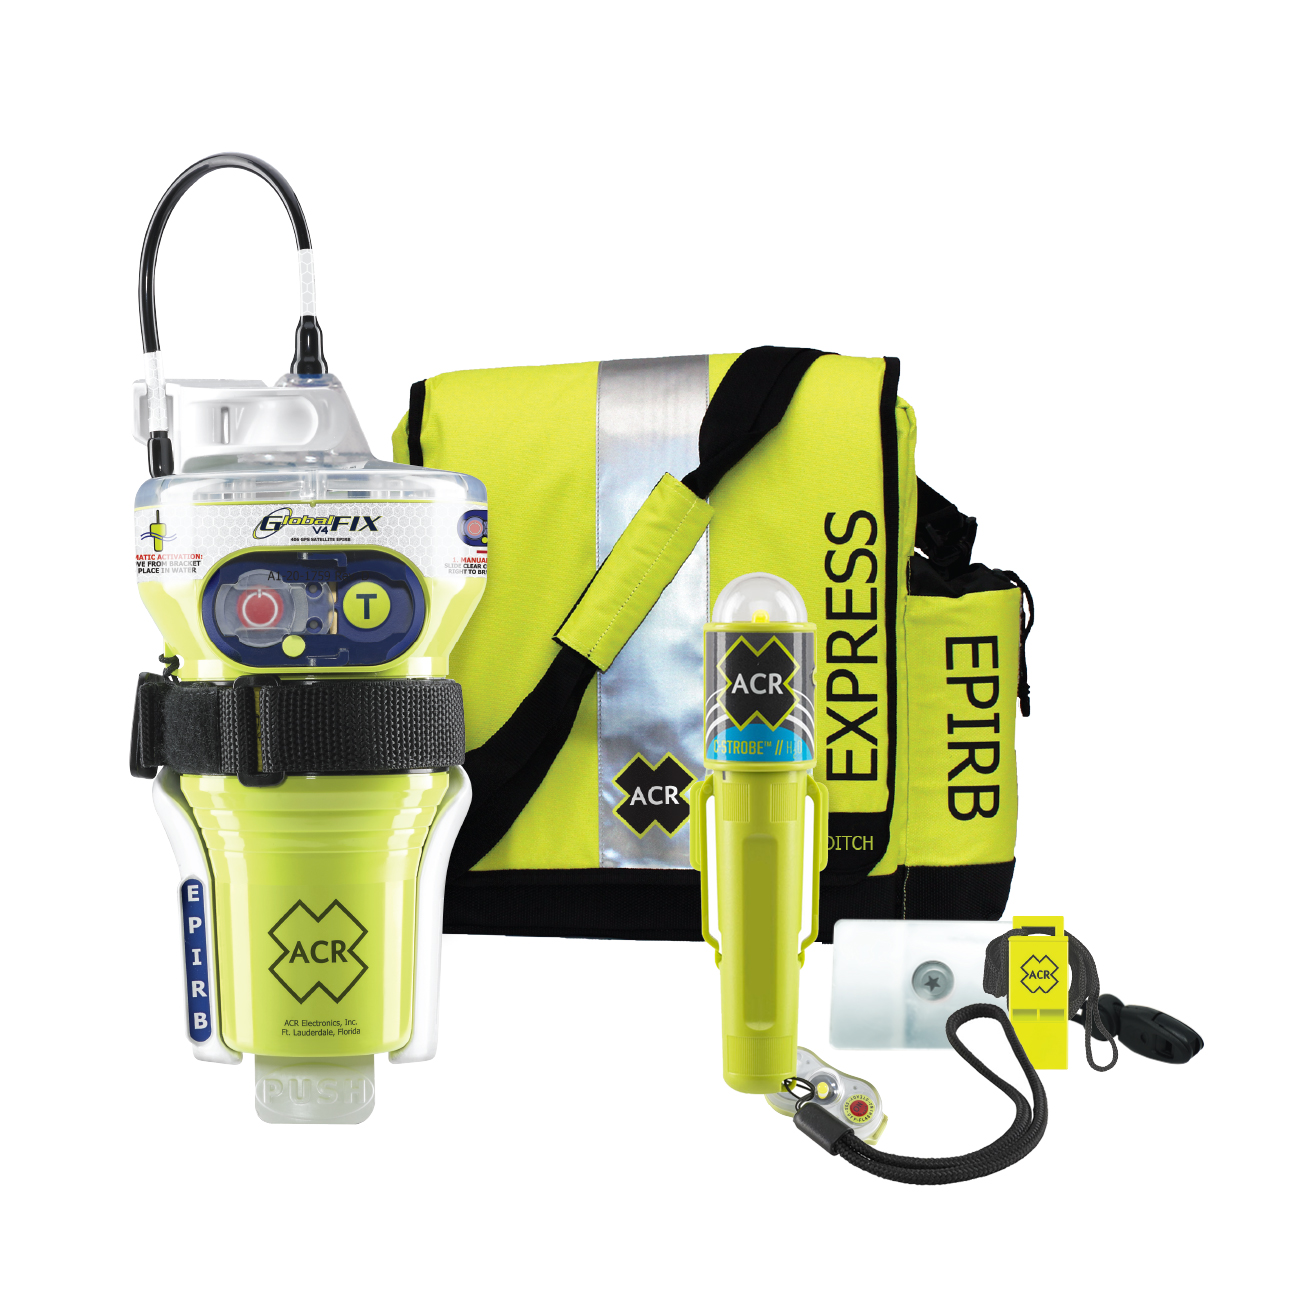 ACR GlobalFix™ V4 Category 2 w/Rapid Ditch Bag, C-Strobe, H2O Signal, Mirror, Rescue Whistle Survival Kit CD-84307